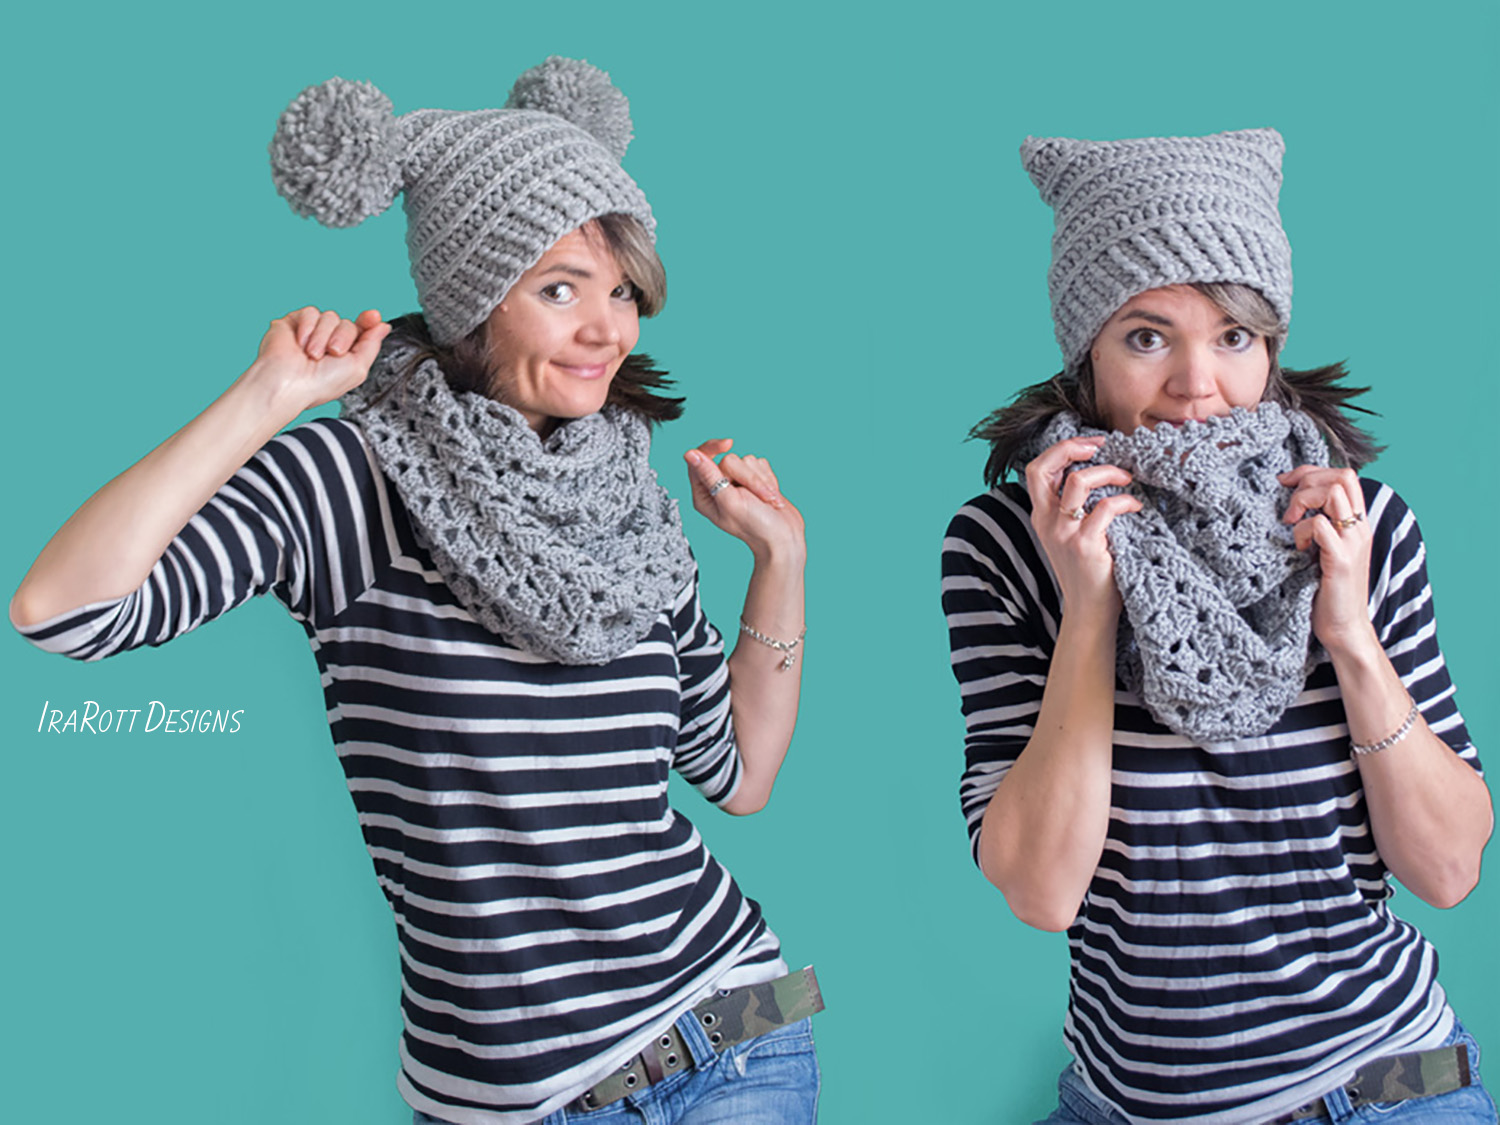 Crochet Pattern PDF for Making a Stylish Chunky Hat with PomPoms or Tassels by IraRott Inc.